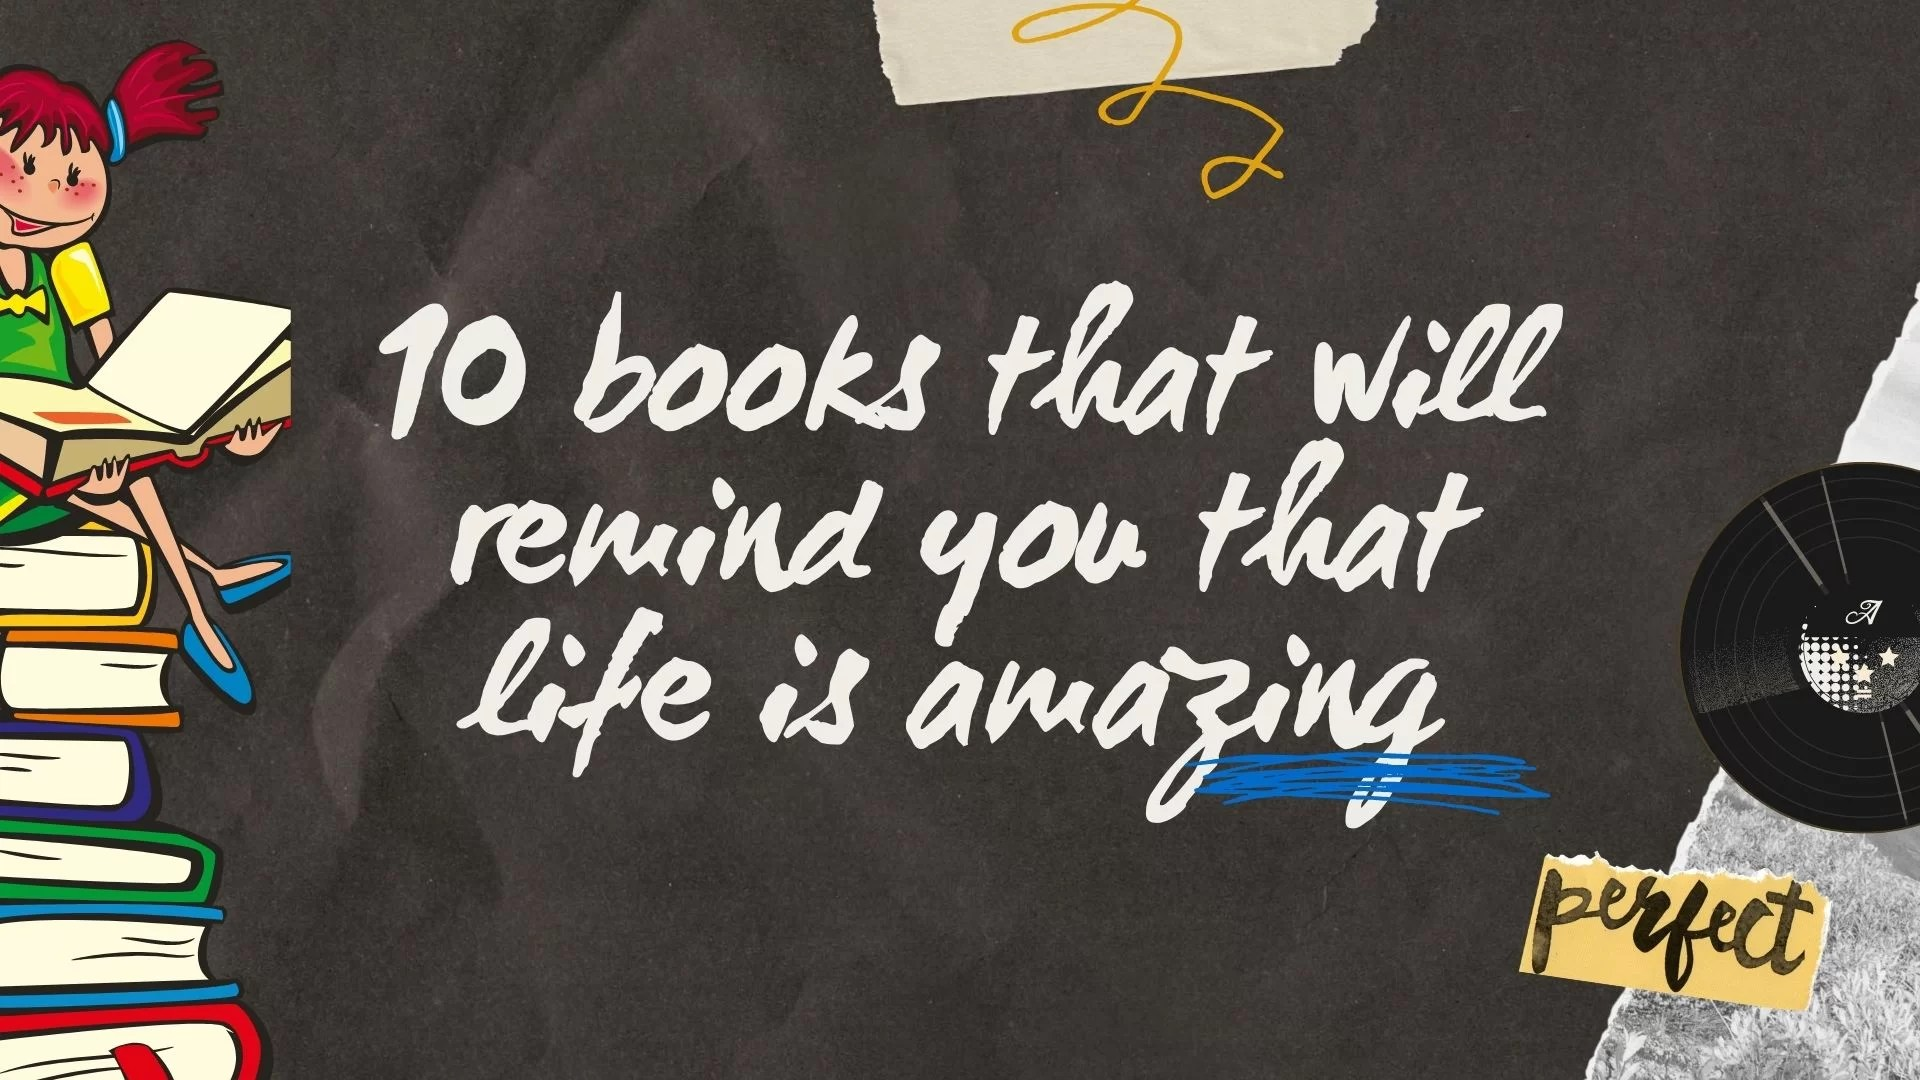 10 books that will remind you that life is amazing